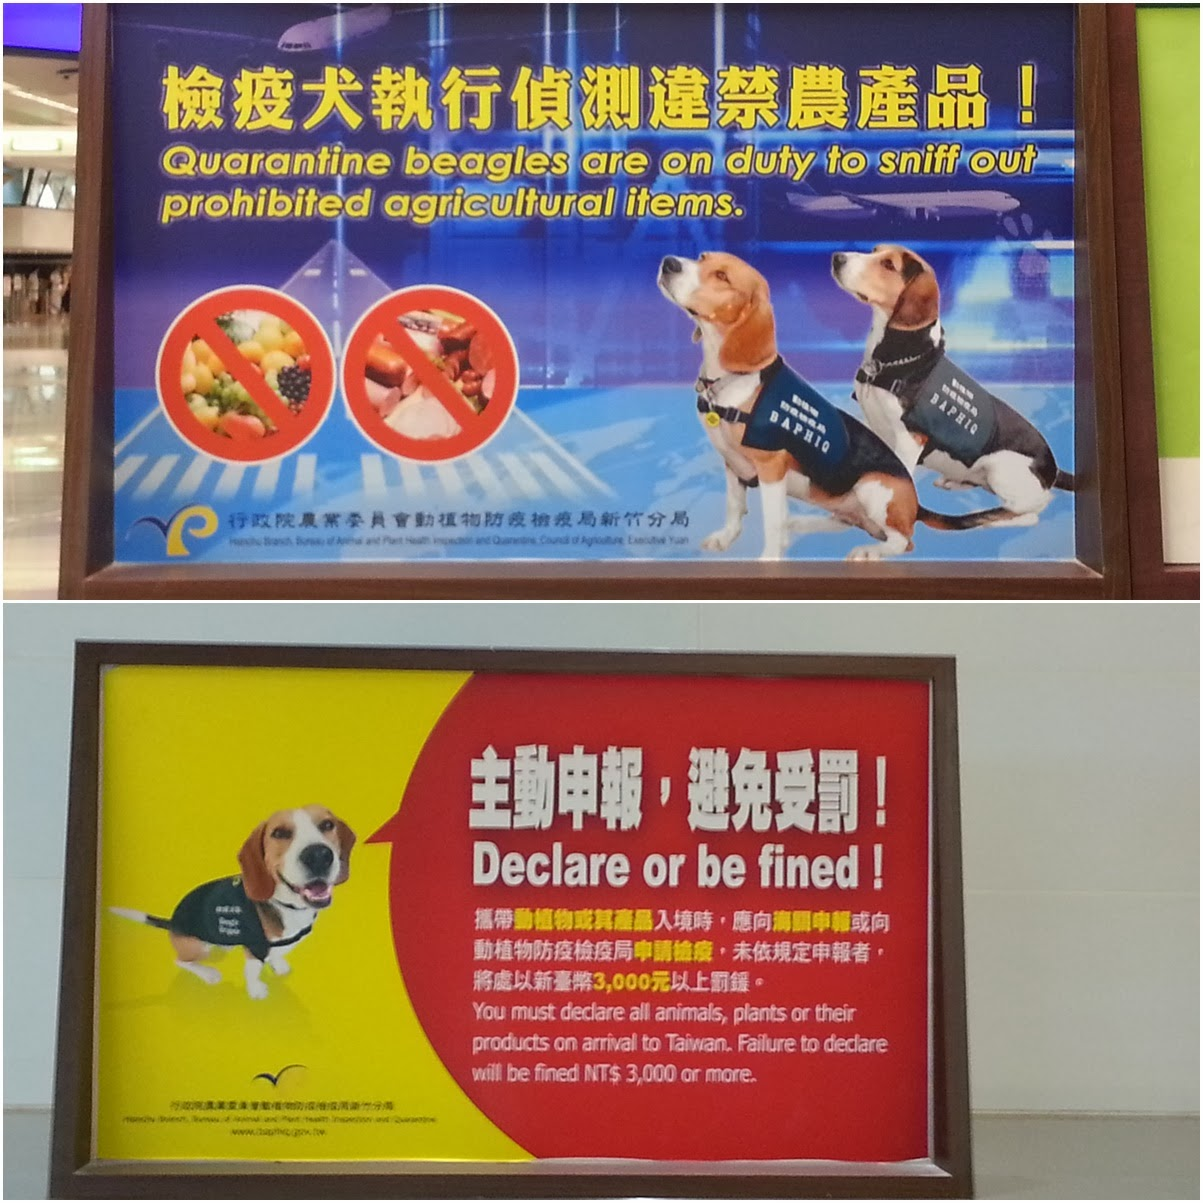 Dog friendly signs reminding the visitors to declare before walking out from Taoyuan International Airport Arrival in Taipei, Taiwan